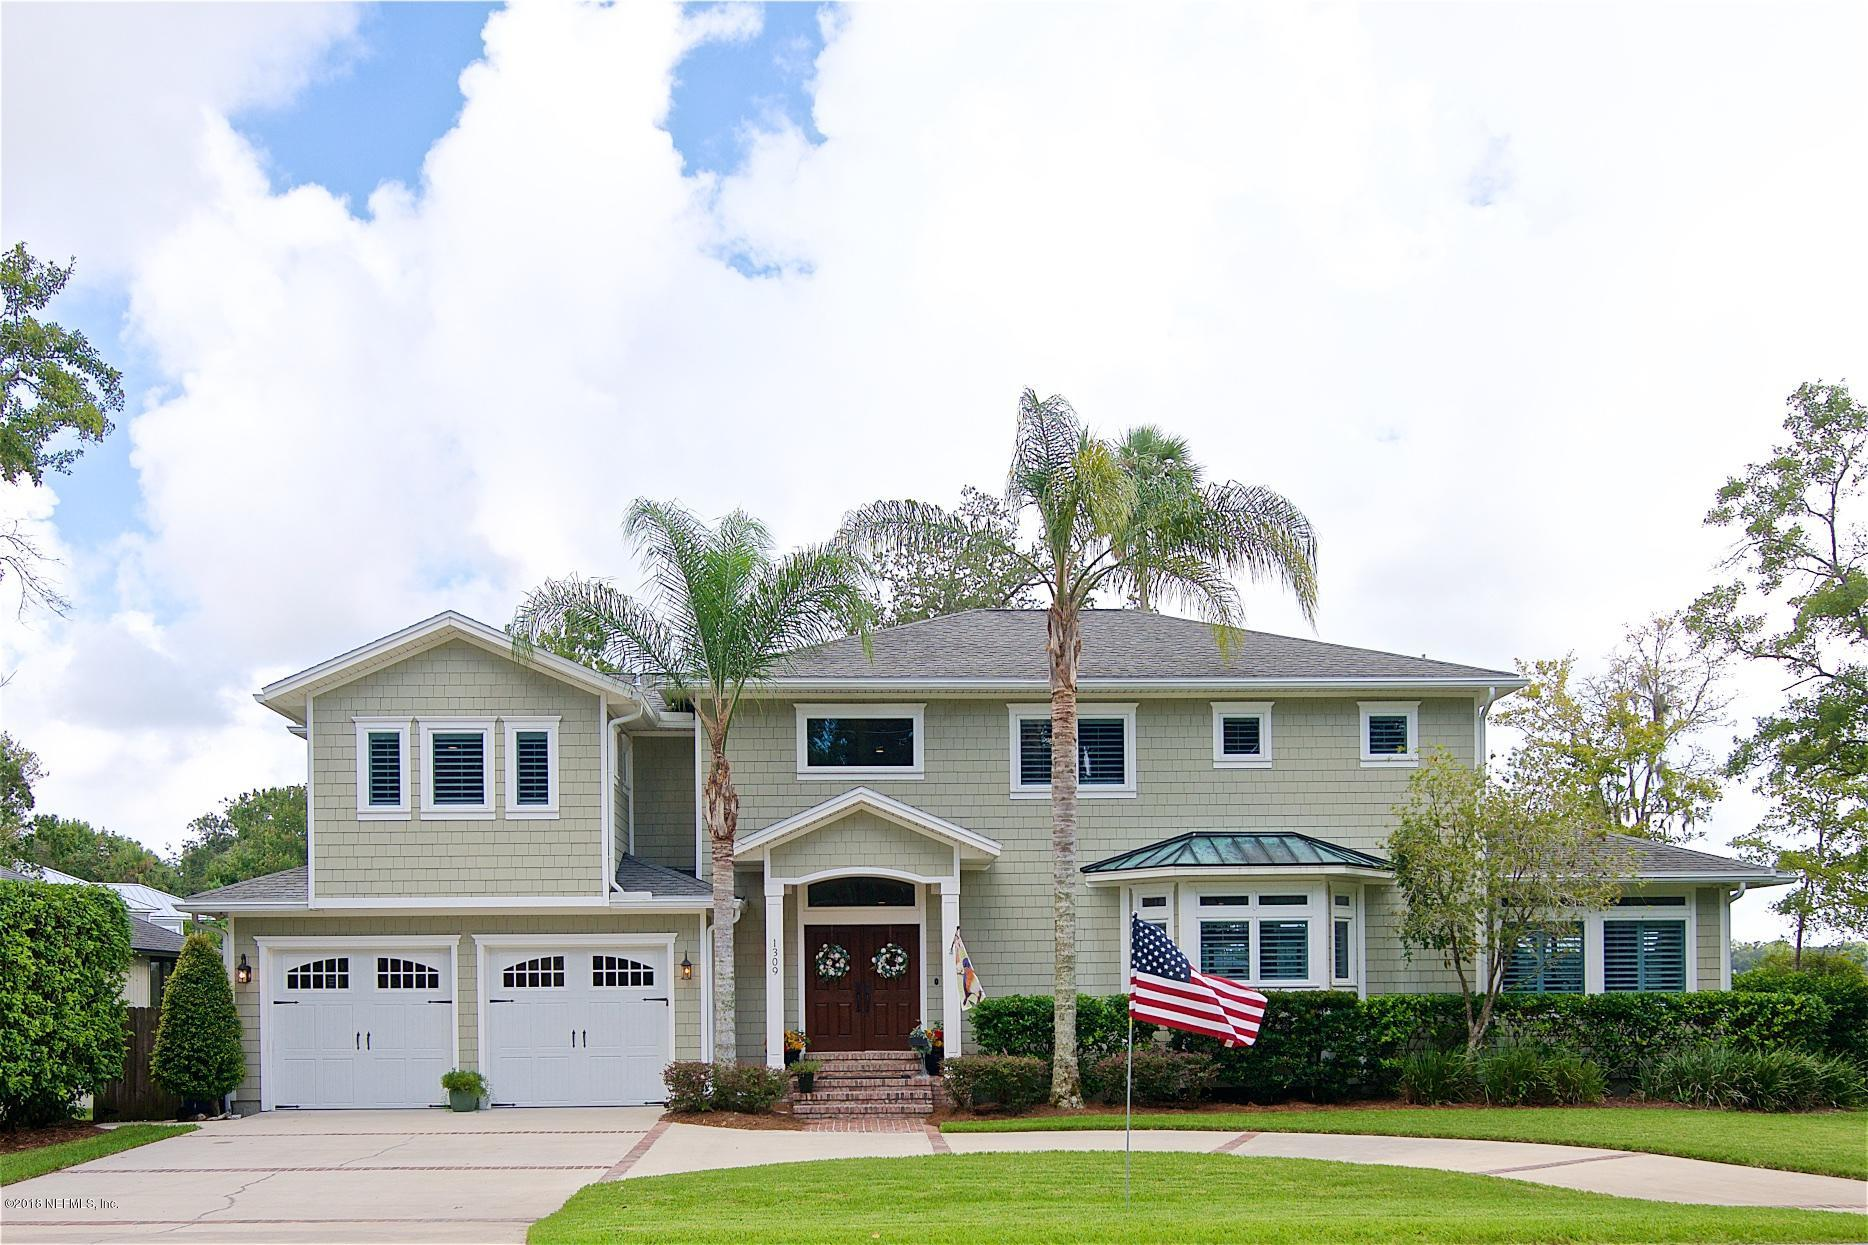 1309 FOREST, NEPTUNE BEACH, FLORIDA 32266, 5 Bedrooms Bedrooms, ,3 BathroomsBathrooms,Residential - single family,For sale,FOREST,956783